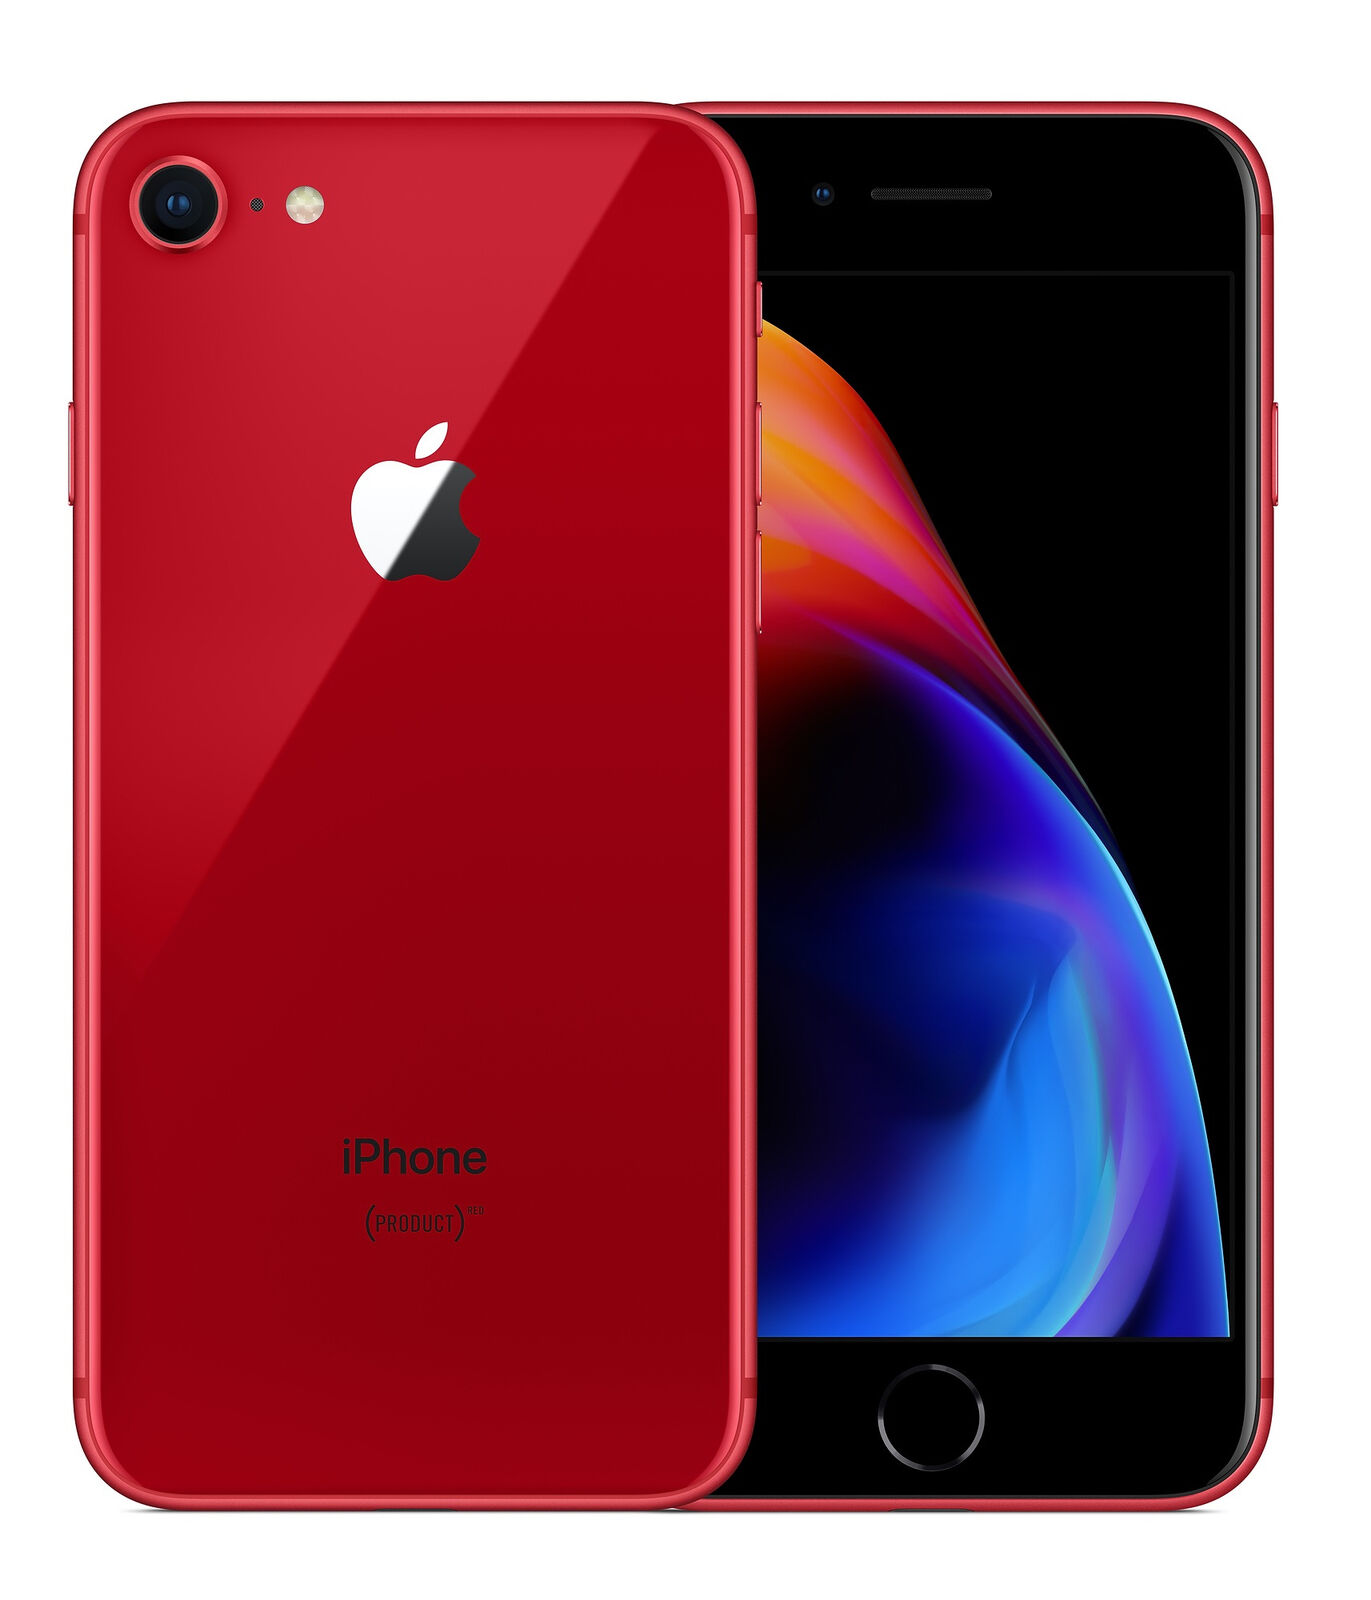 Apple iPhone 8 (PRODUCT)RED - 64GB - (Verizon) A1863 (CDMA + GSM)